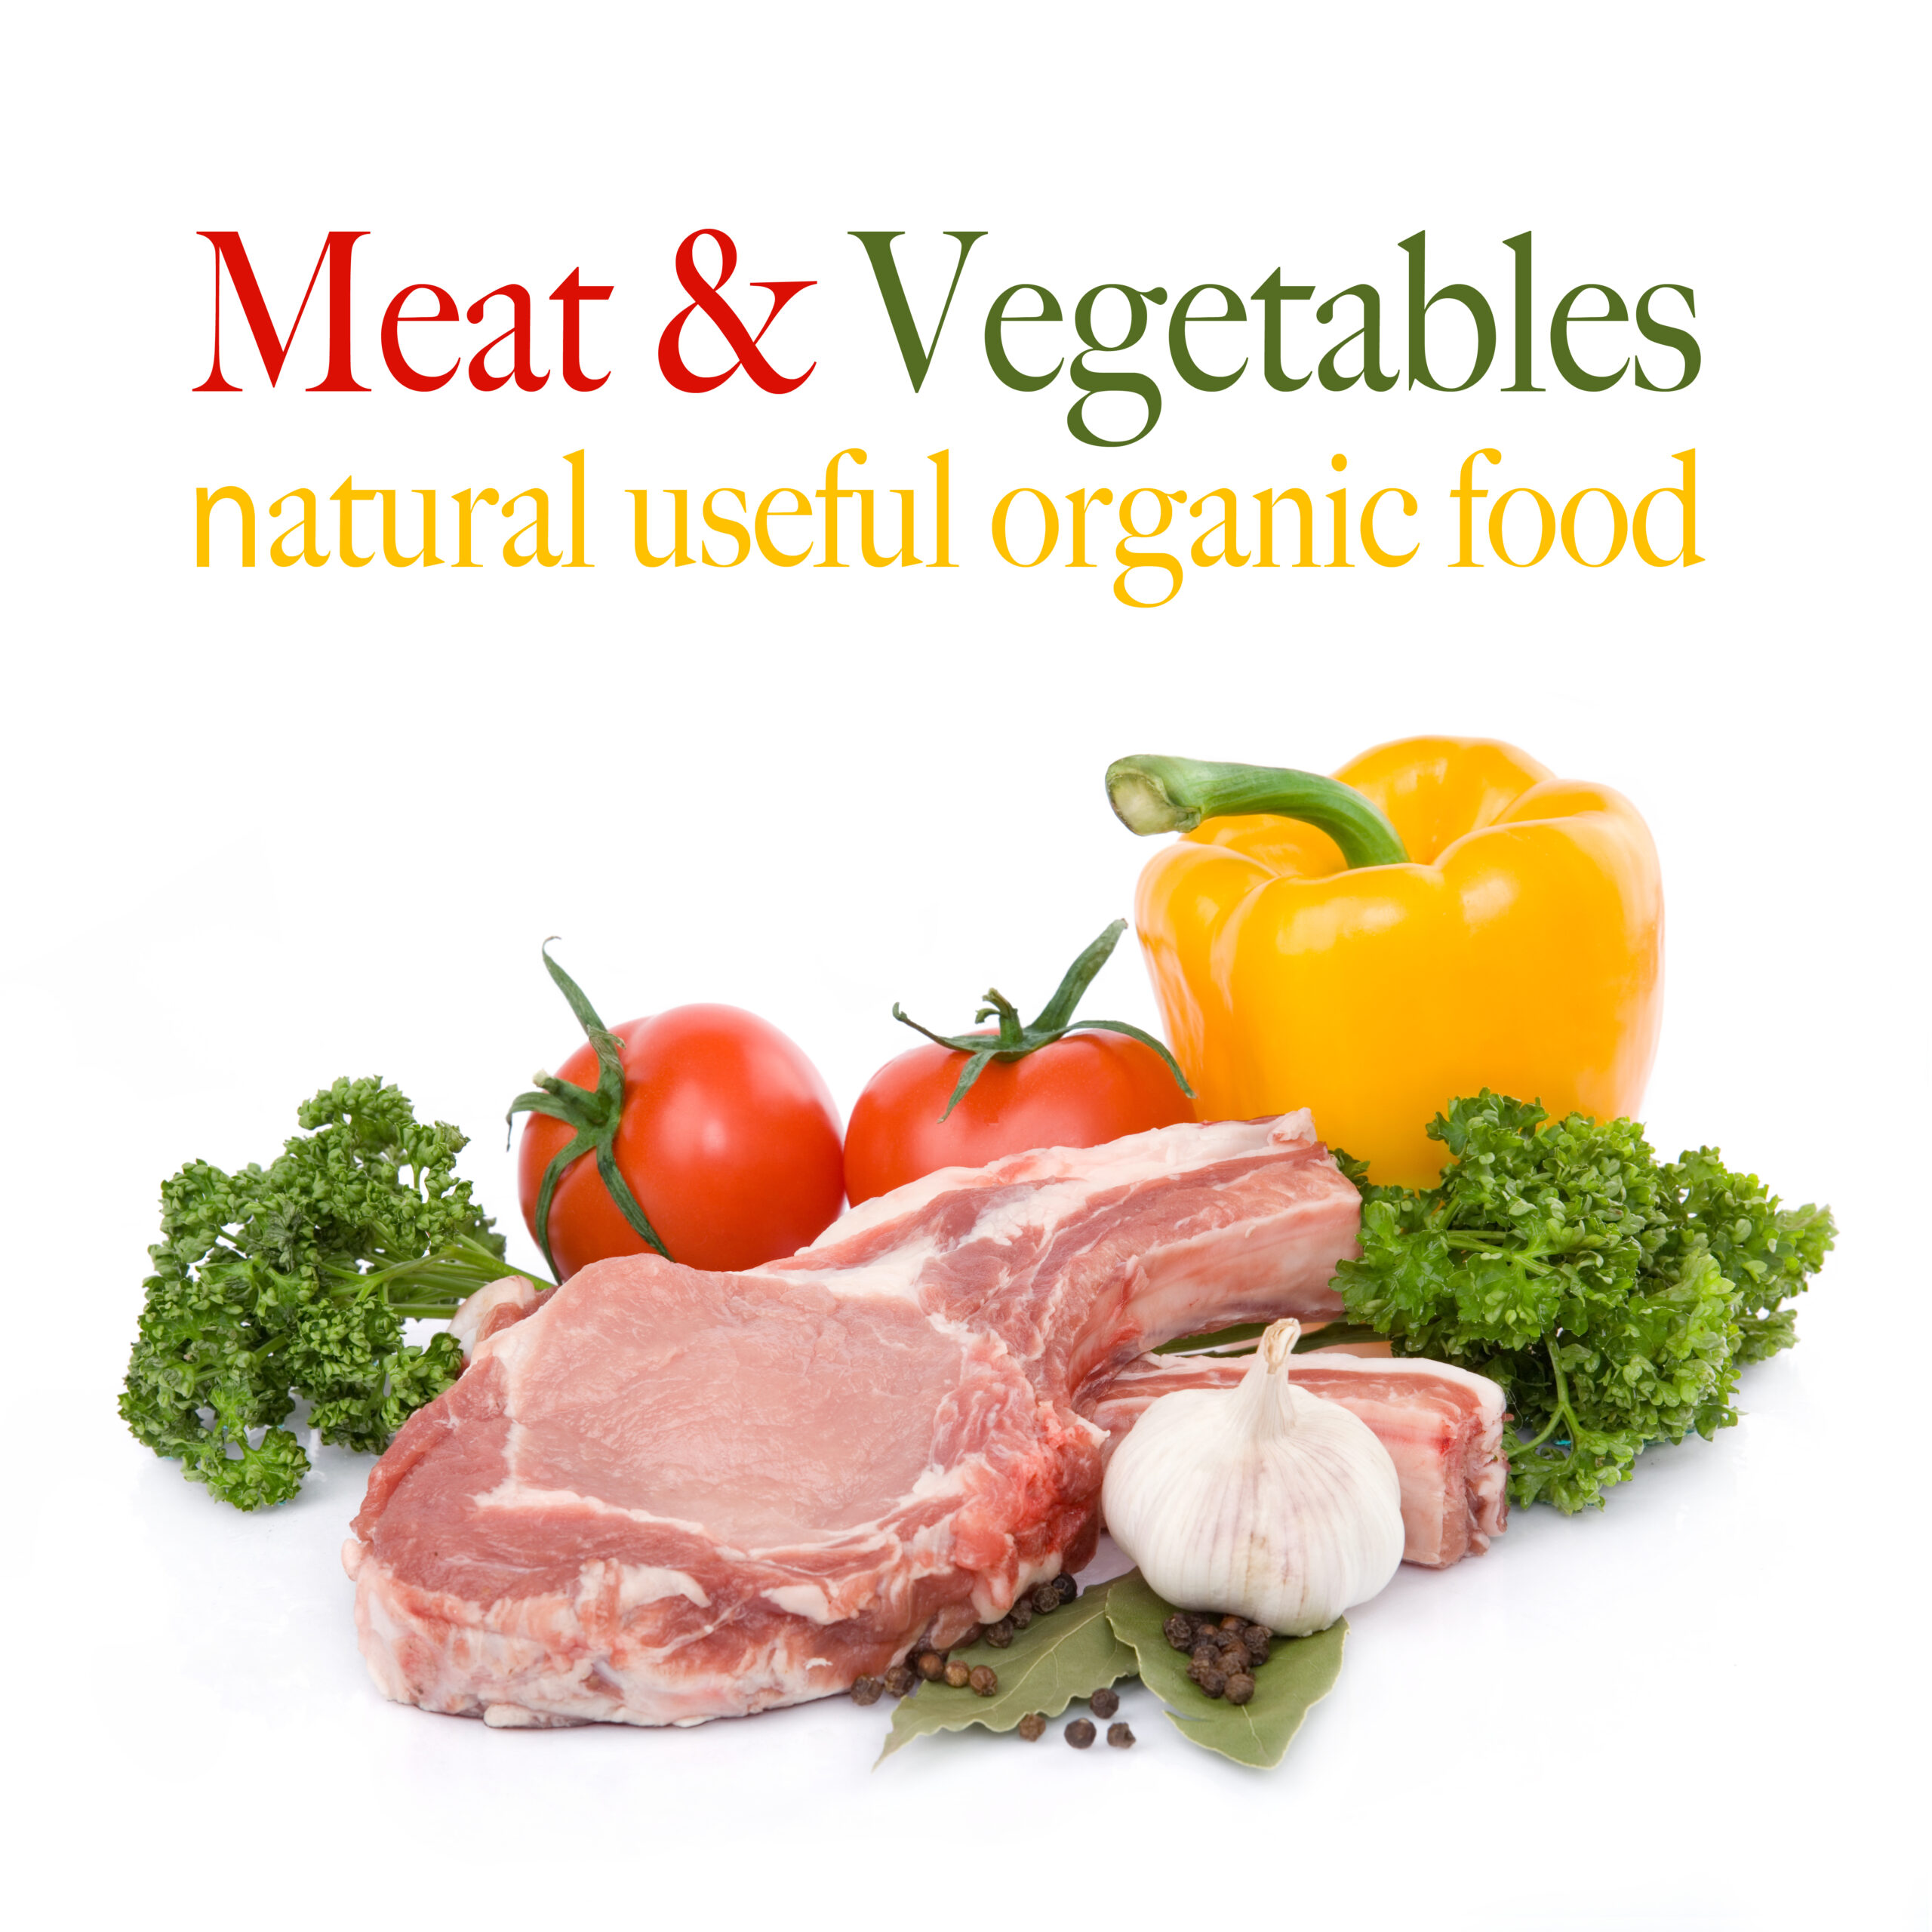 Plant-Based Food And Meat Can Be Combined Flexibly,